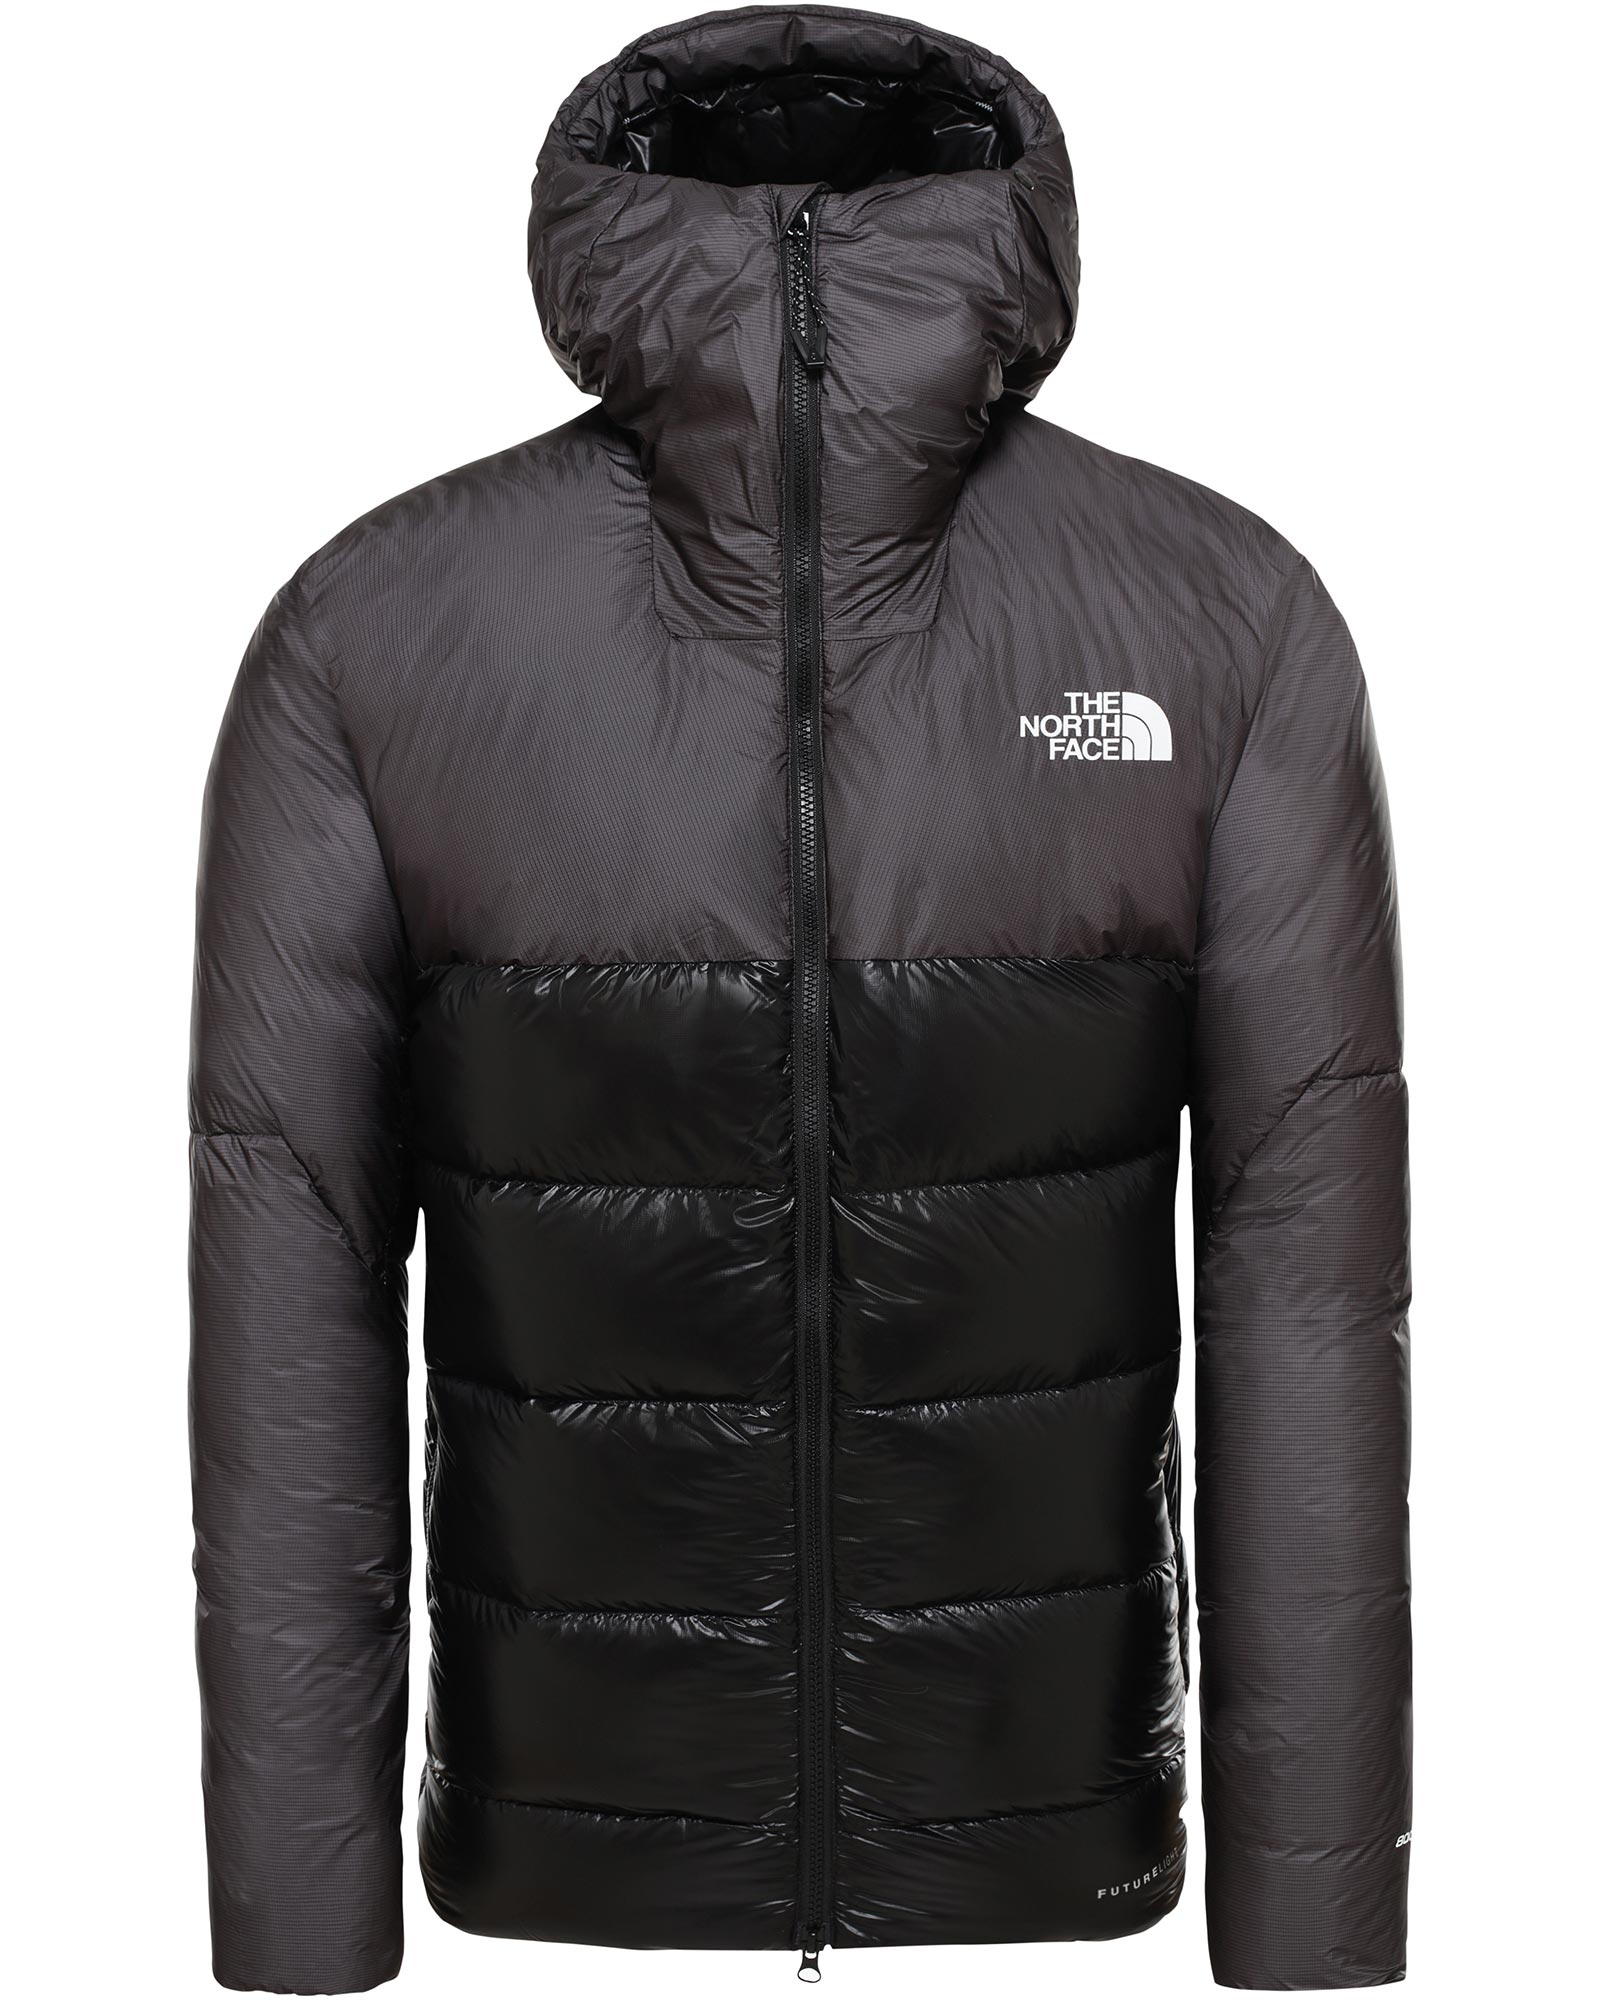 The North Face Men's Summit Series L6 FUTURELIGHT Vapour Down Belay Parka Jacket TNF Black 0